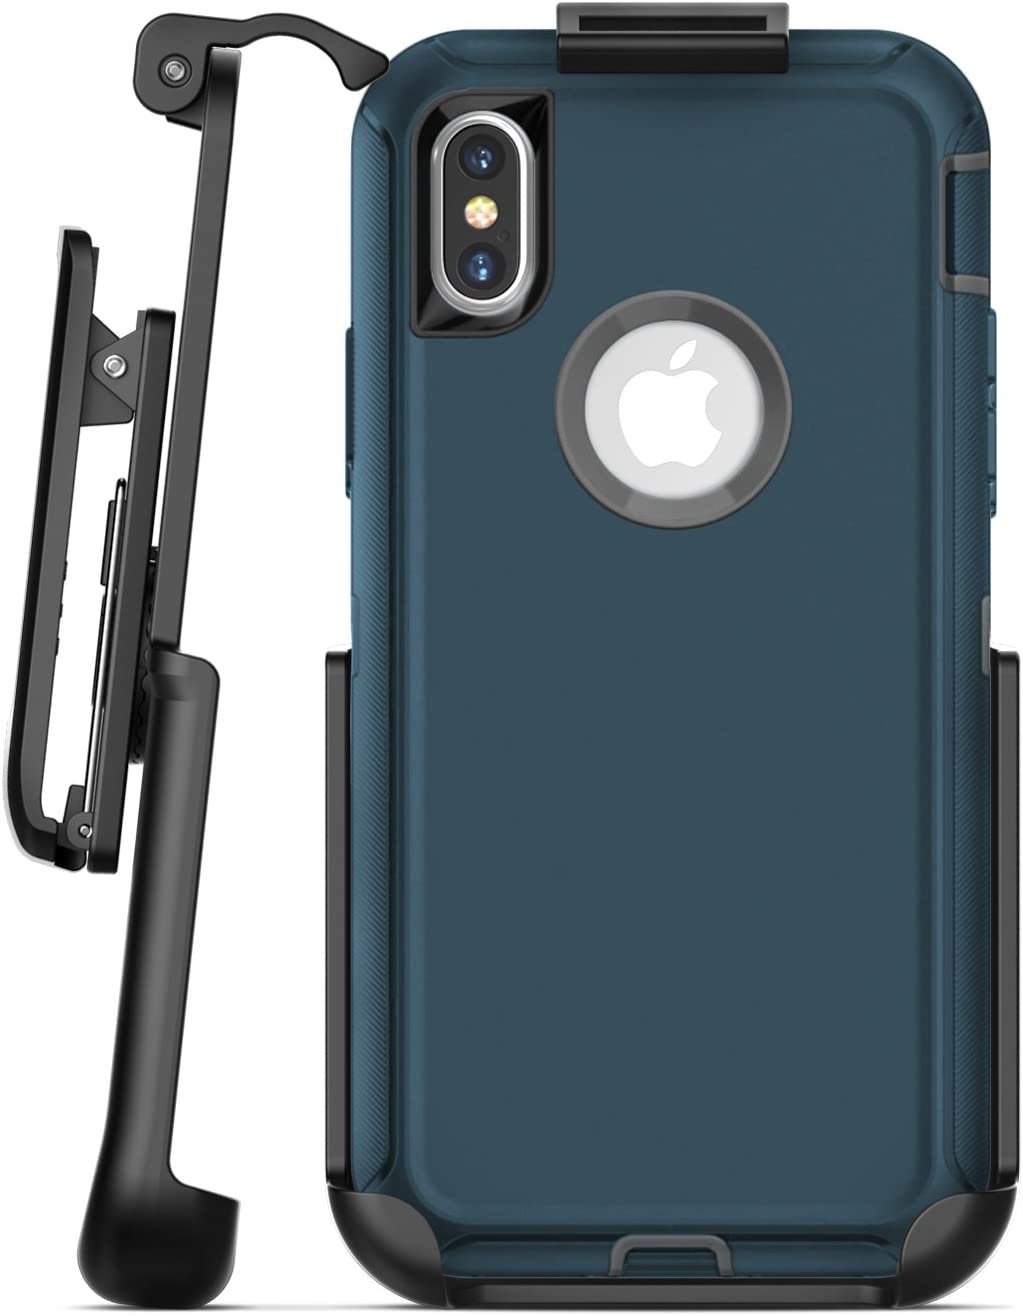 Replacement Belt Clip for Otterbox Defender Case - iPhone X/iPhone Xs (case not Included) Encased Secure-fit Rubberized Holster (Matte Black)